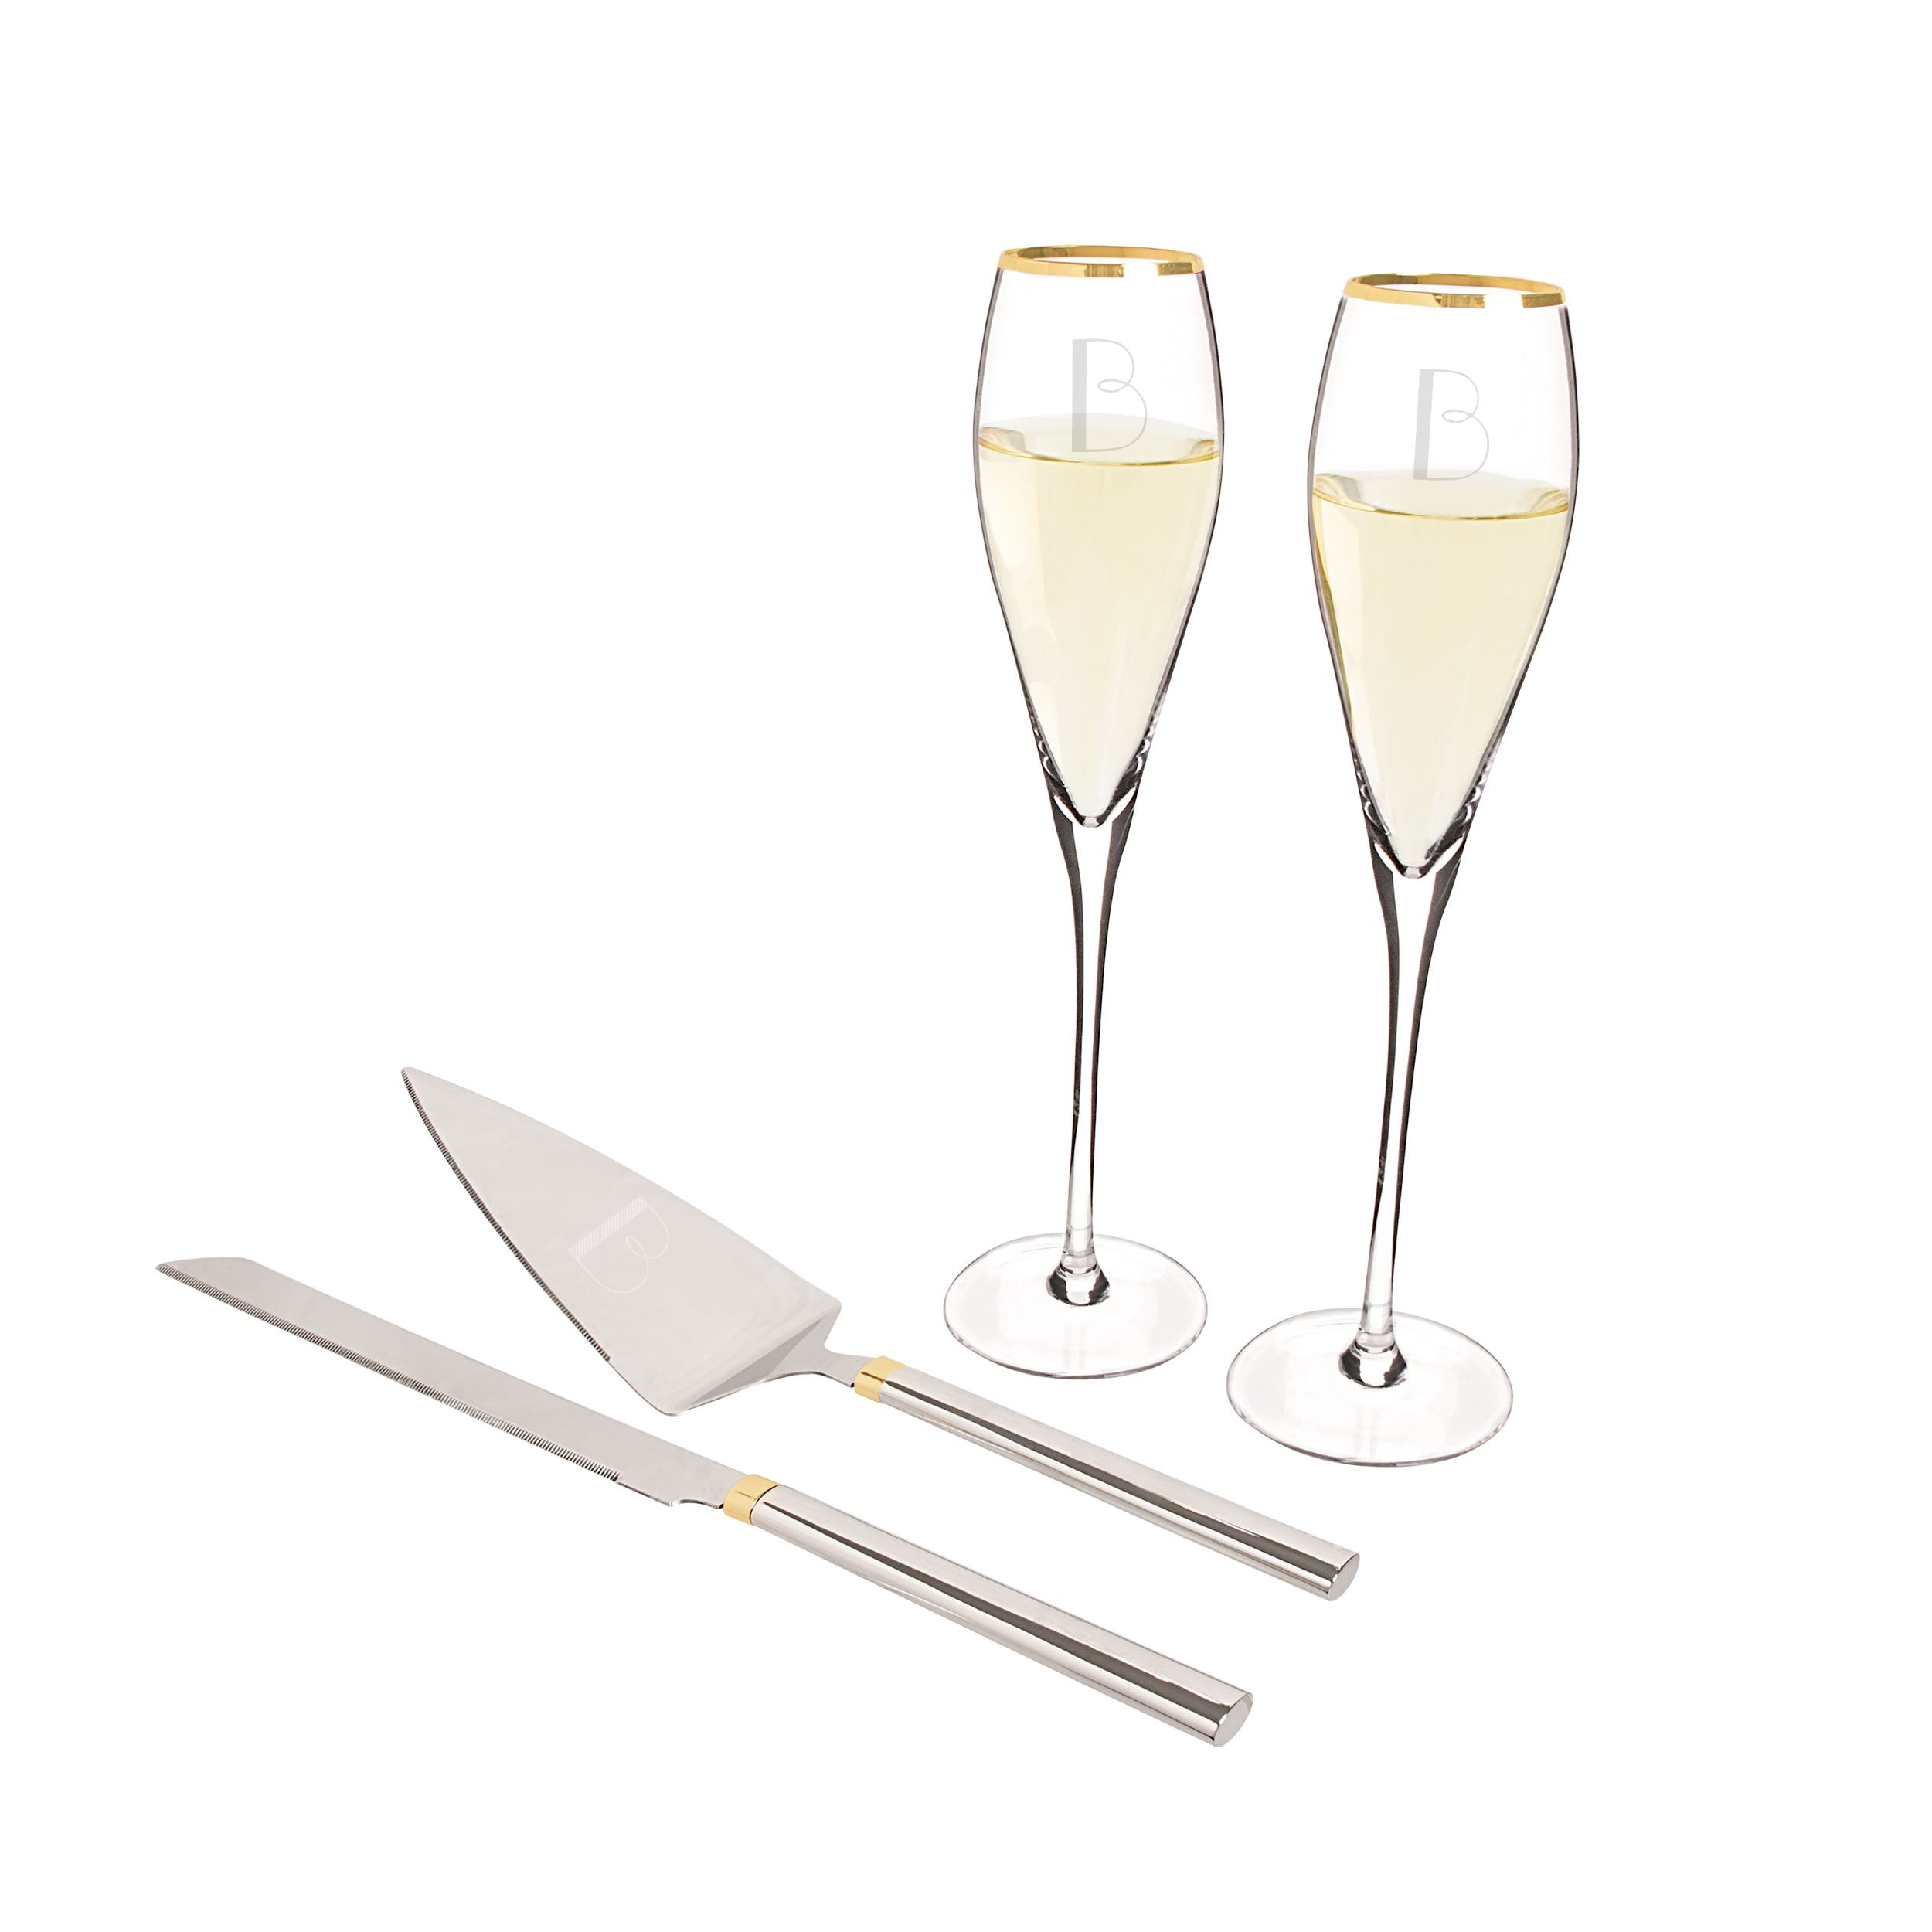 Personalized Gold Champagne Flutes & Cake Serving Set Free